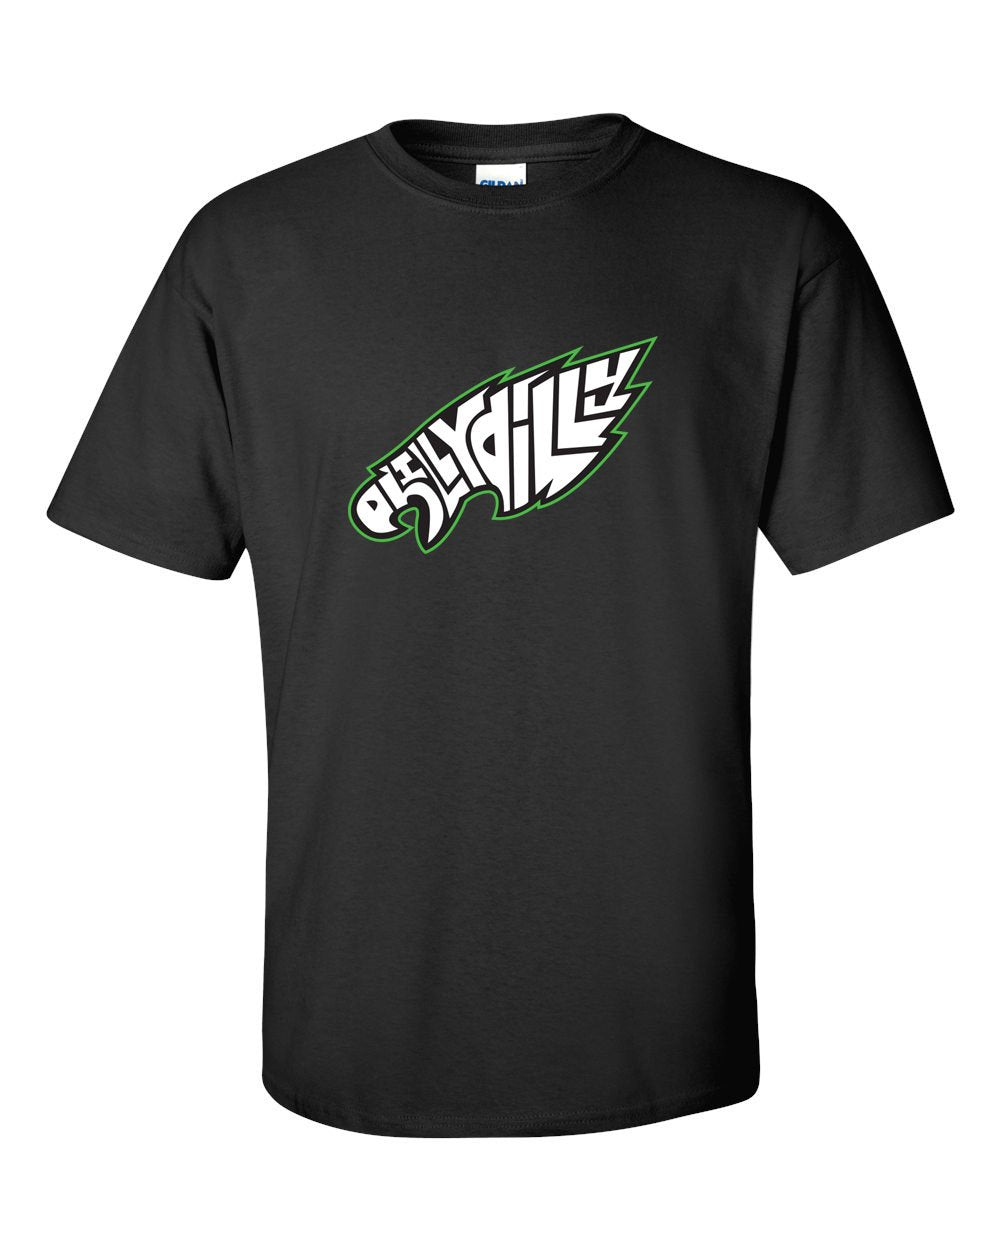 Philly Dilly Mens/Unisex T-Shirt